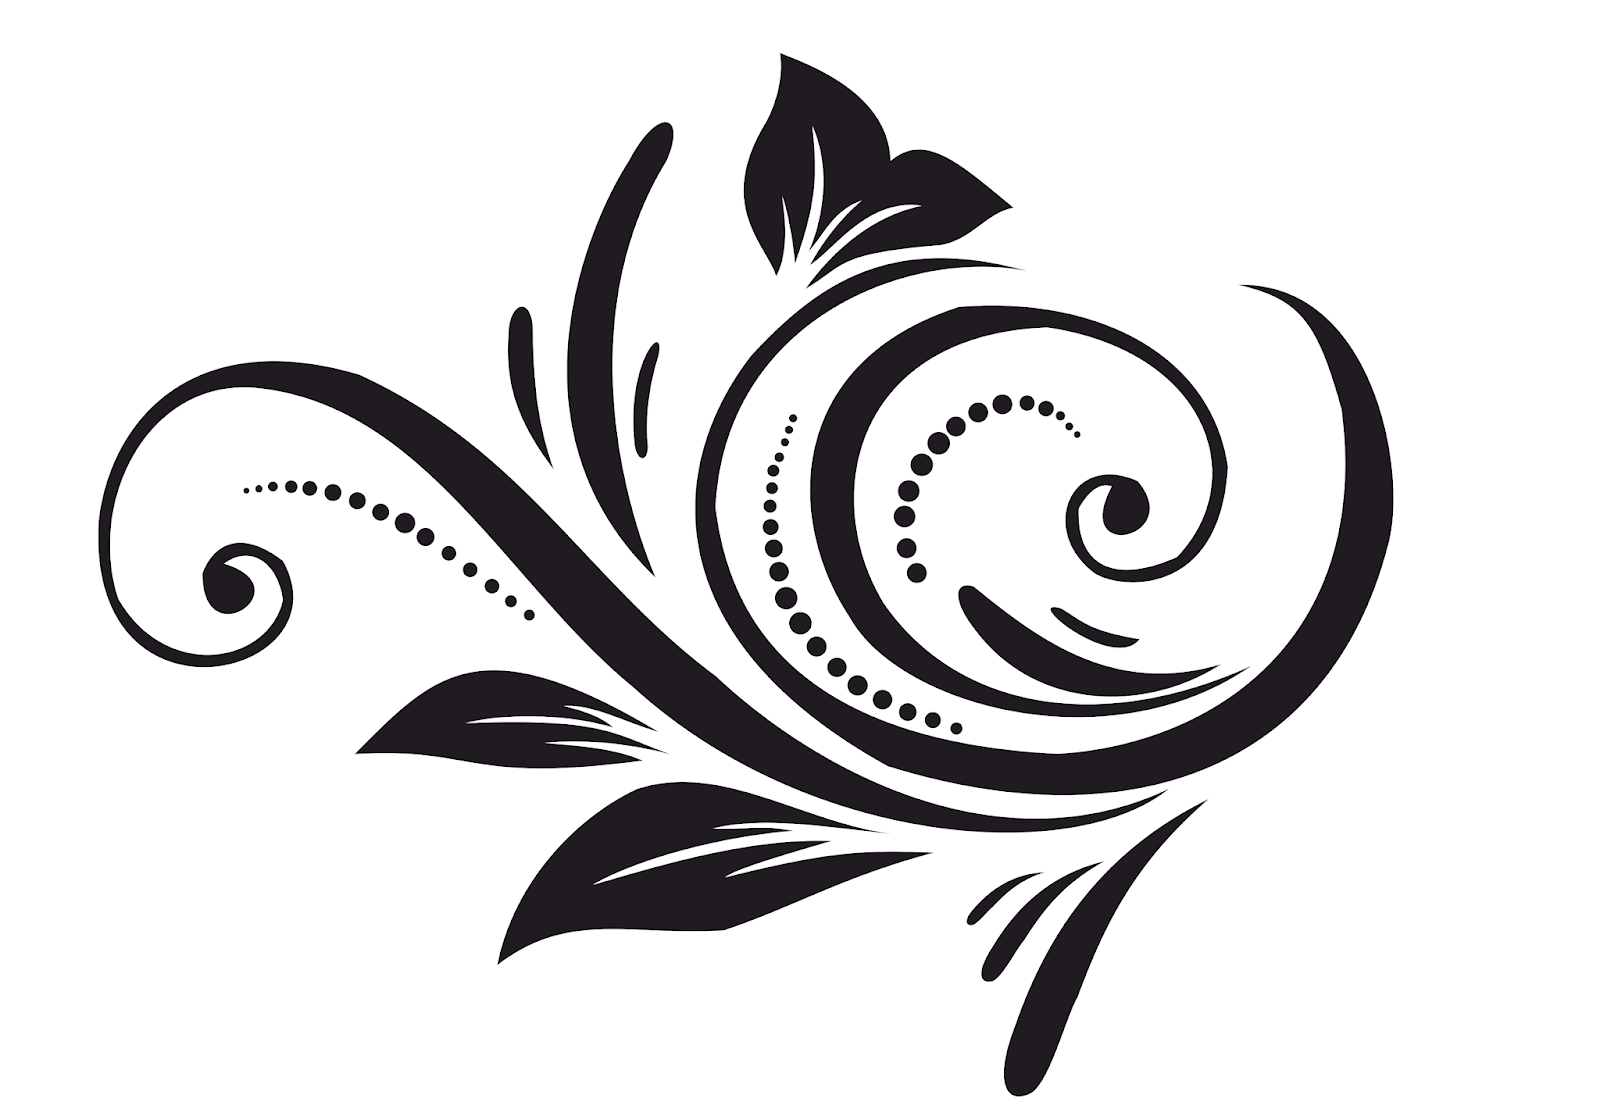 Simple Black And White Swirling Floral Element With A Repeat Vector